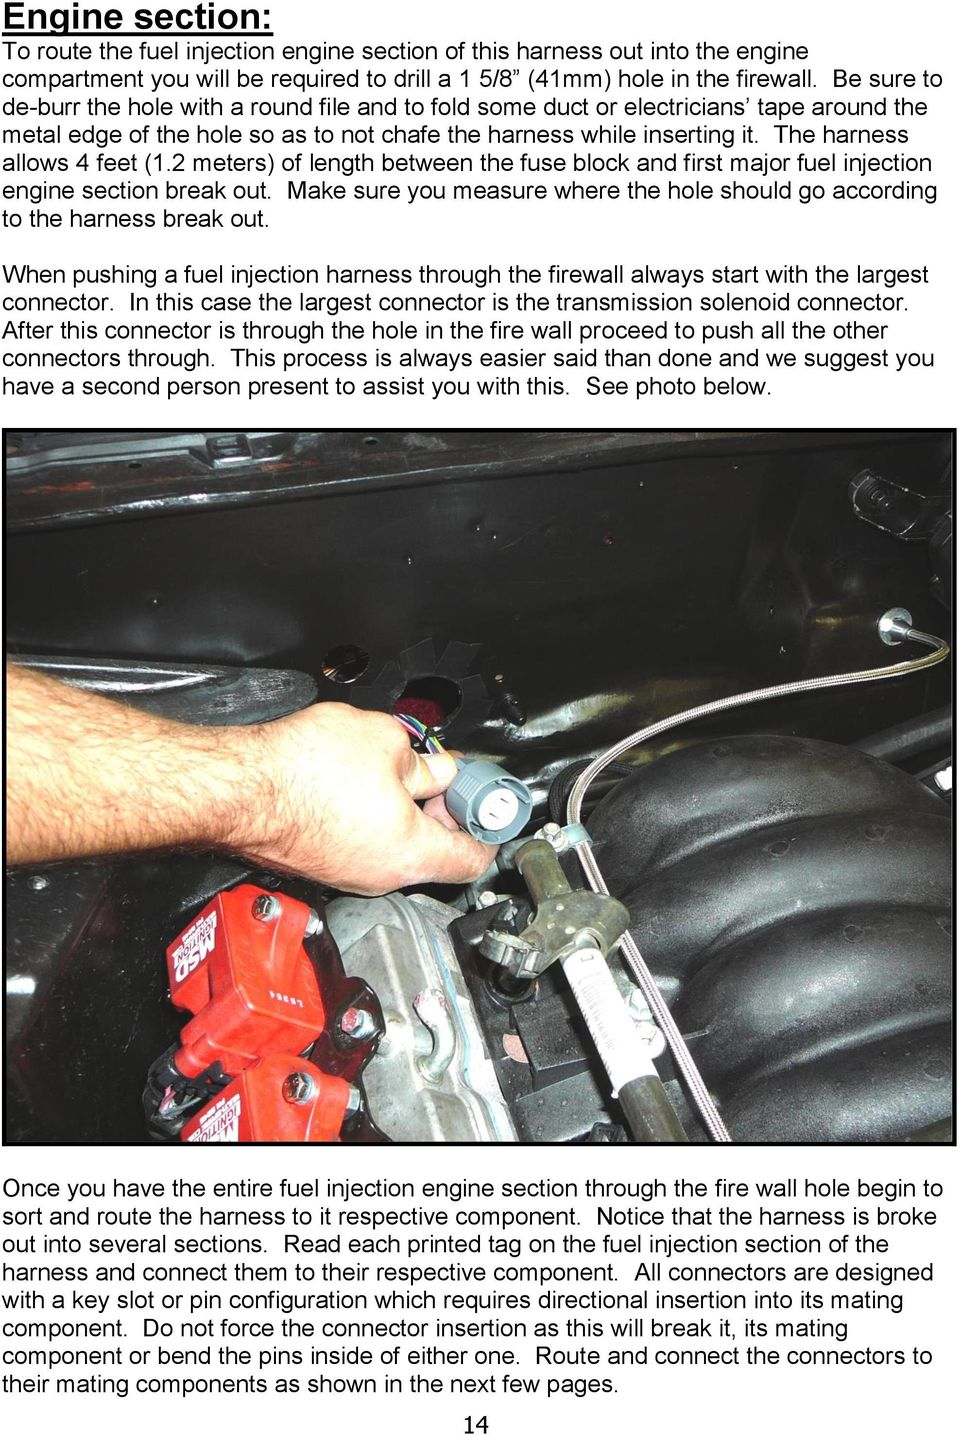 Wire Harness Installation Manual Part Pdf 2003 Chevy Impala Heater Schematic The Allows 4 Feet 12 Meters Of Length Between Fuse Block And